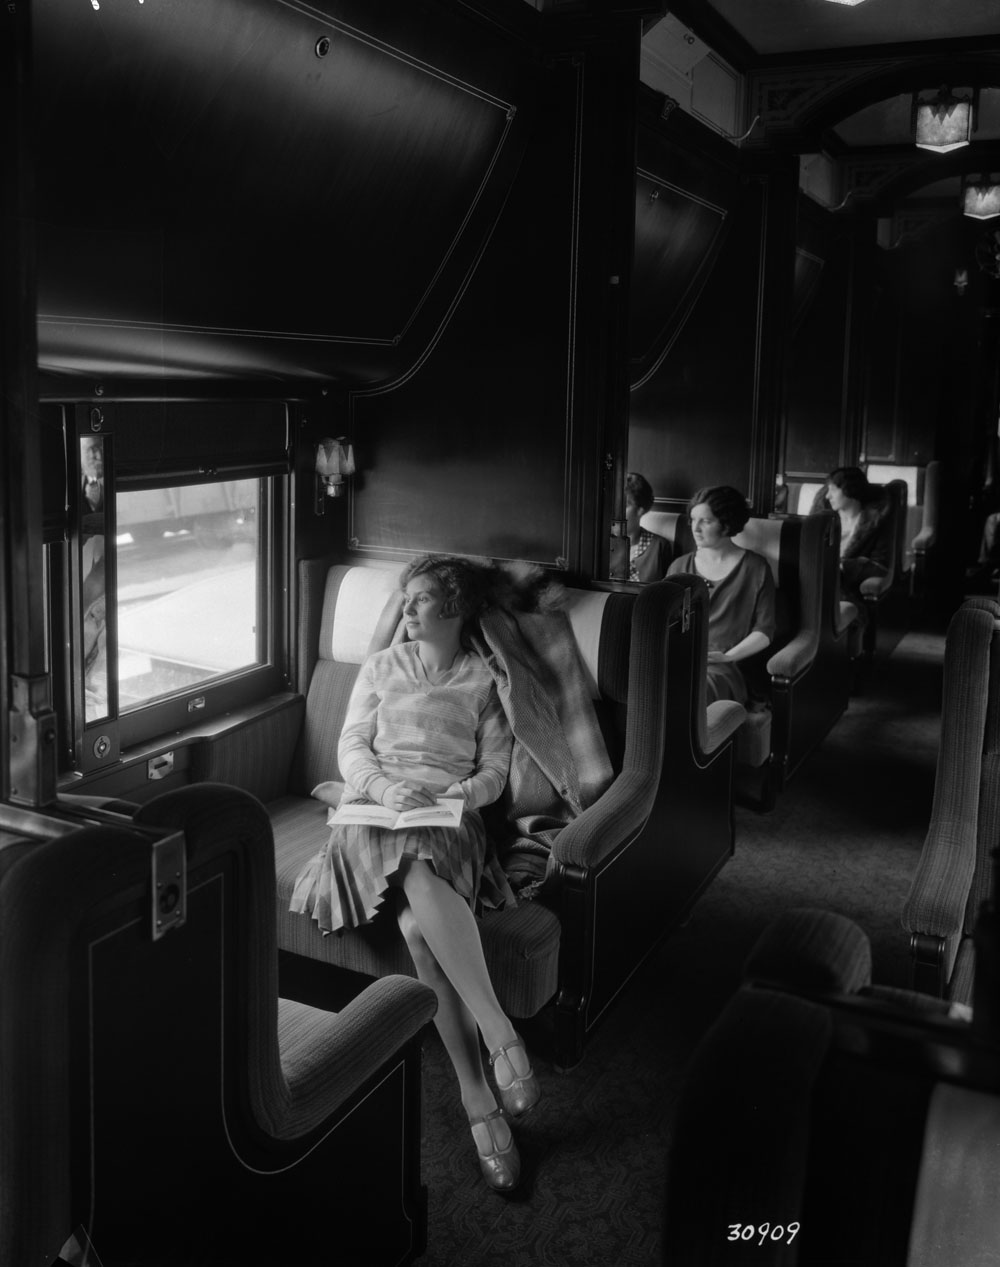 Sleeping Car Interior